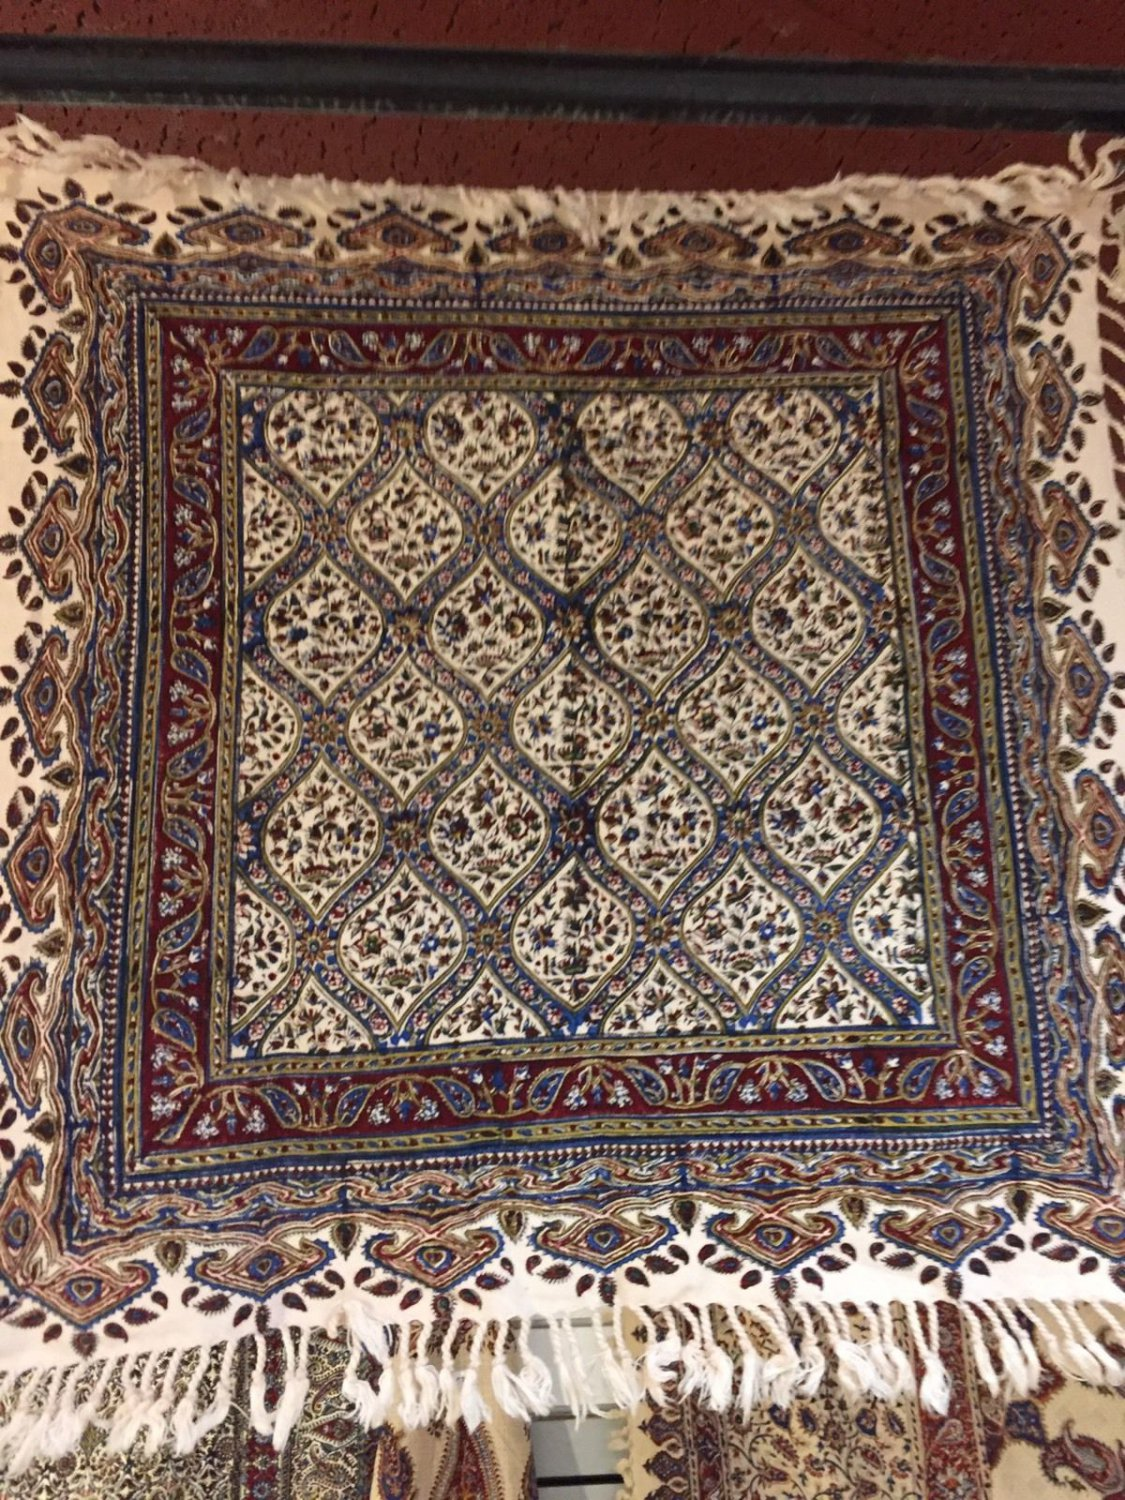 Wall Hanging Cotton Hand Made Home Decorpersian Art Natural